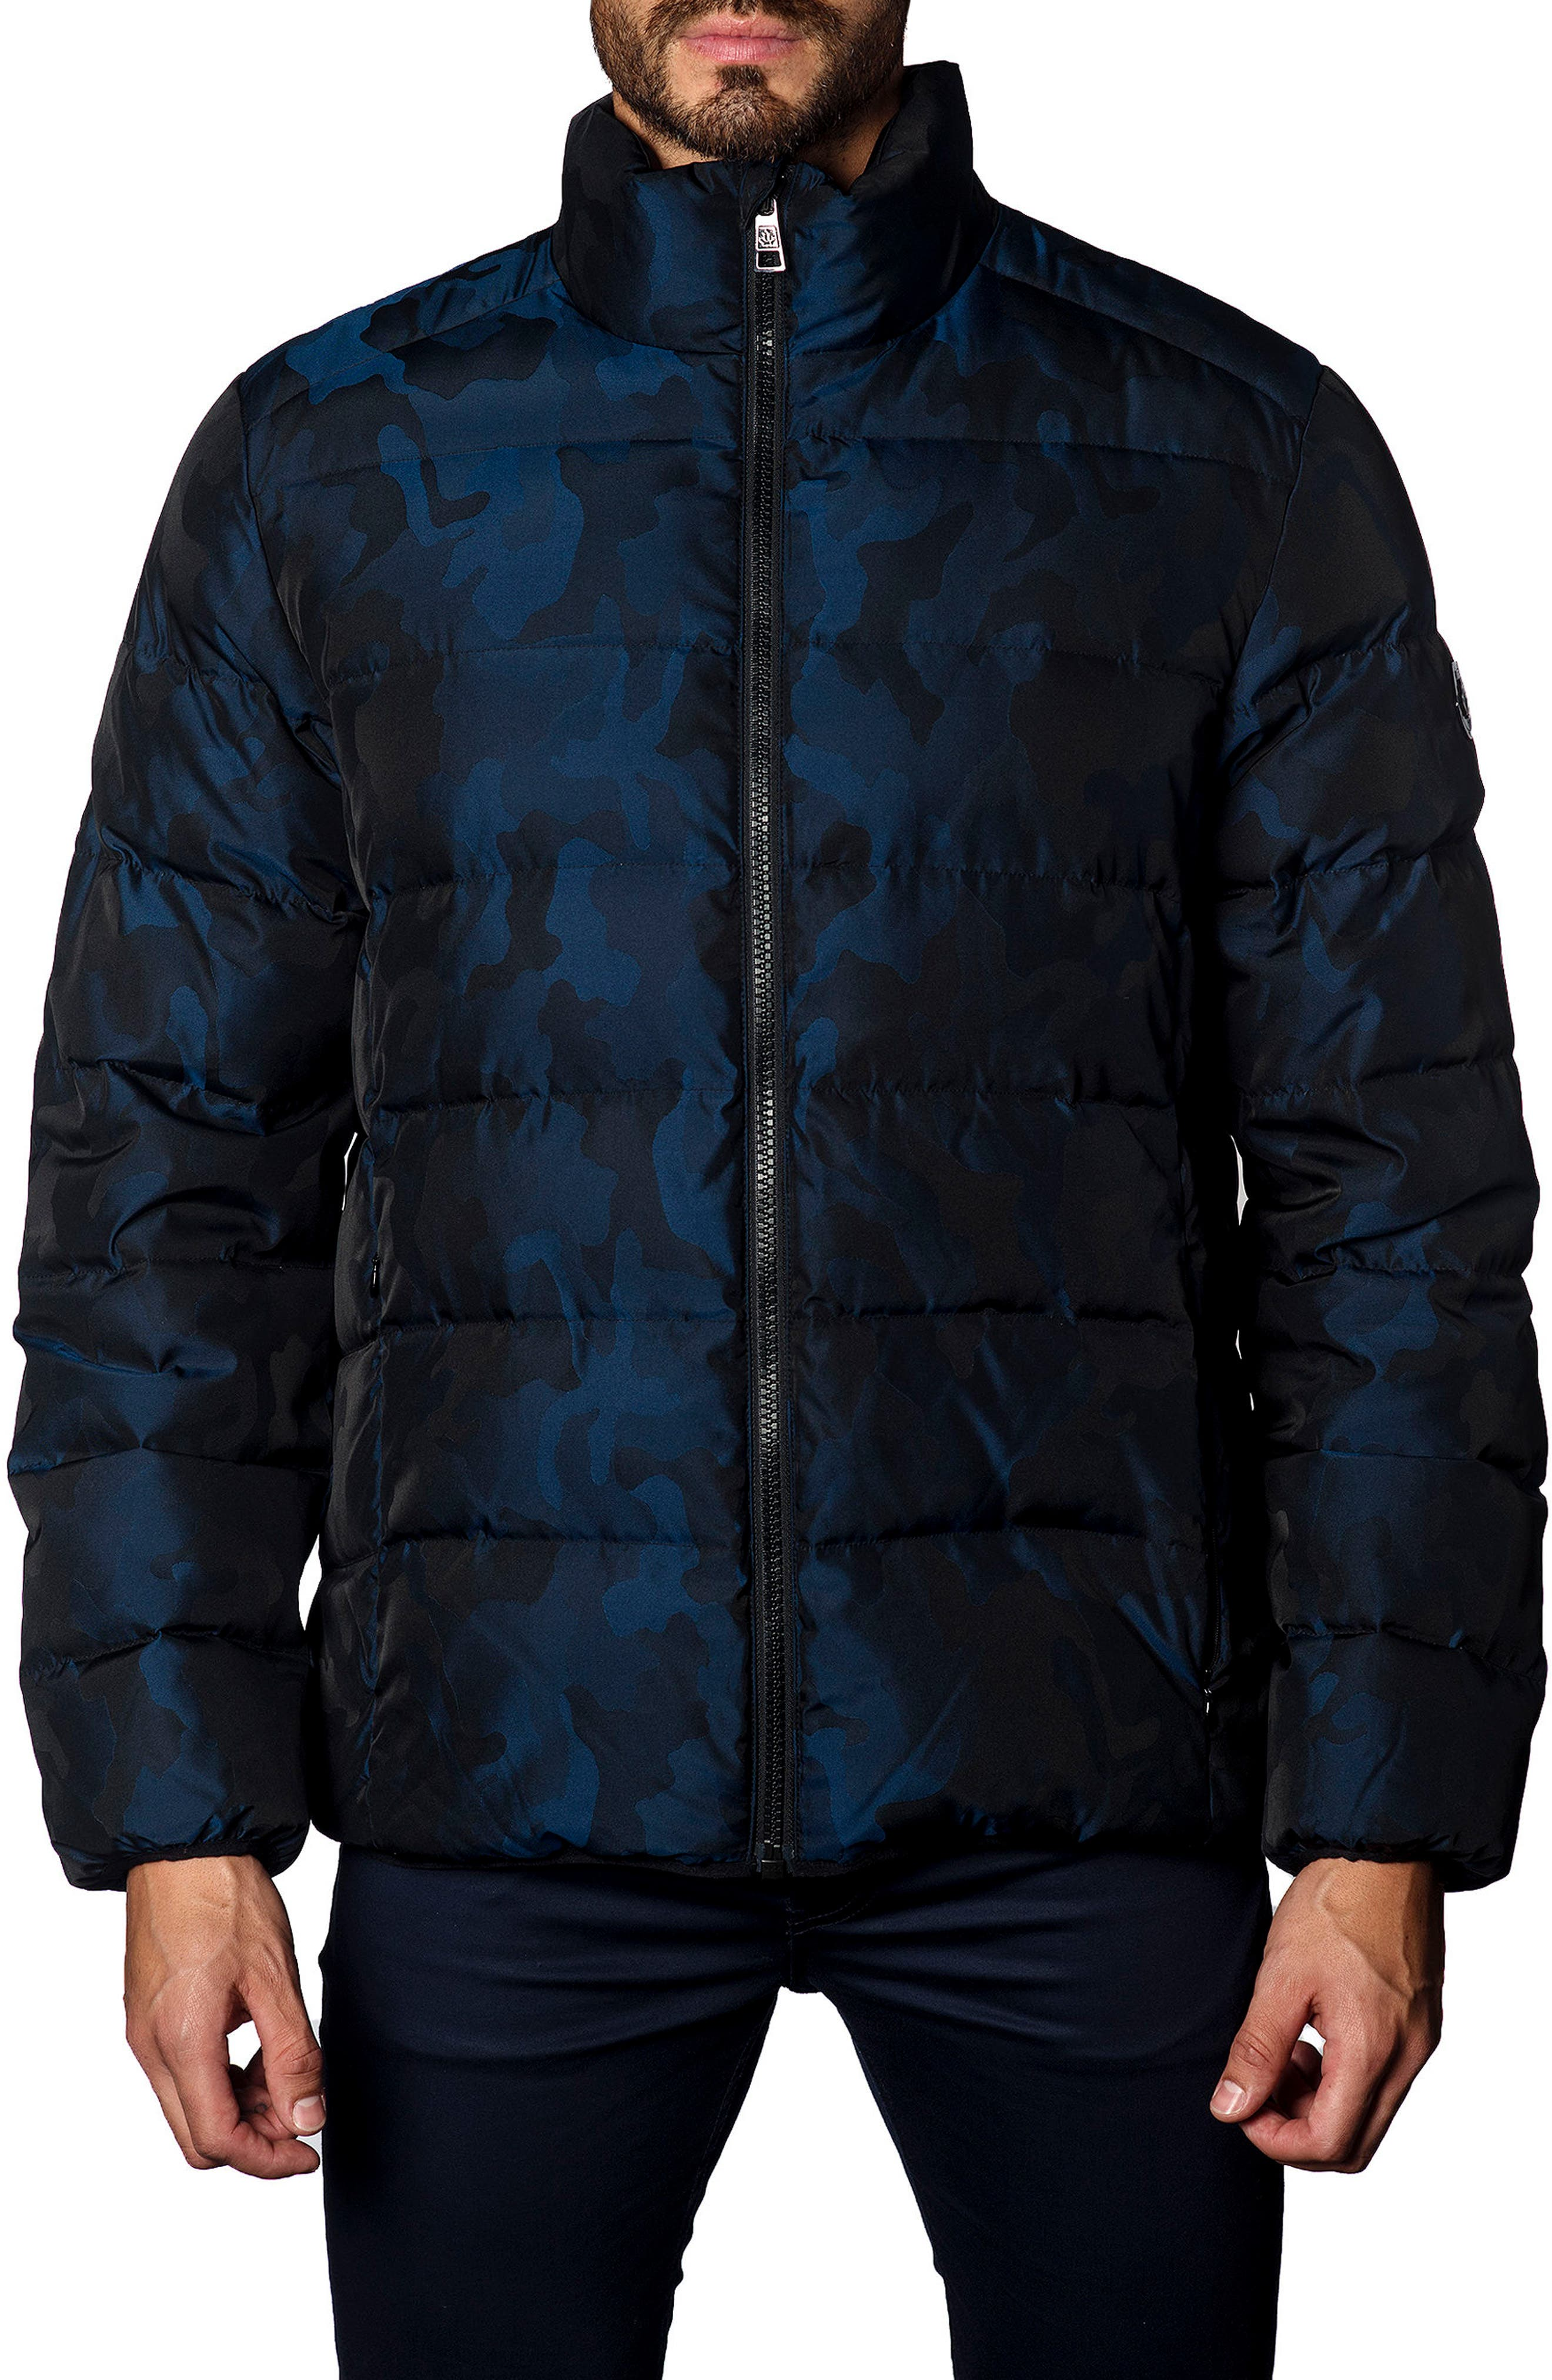 Down Puffer Jacket,                             Main thumbnail 3, color,